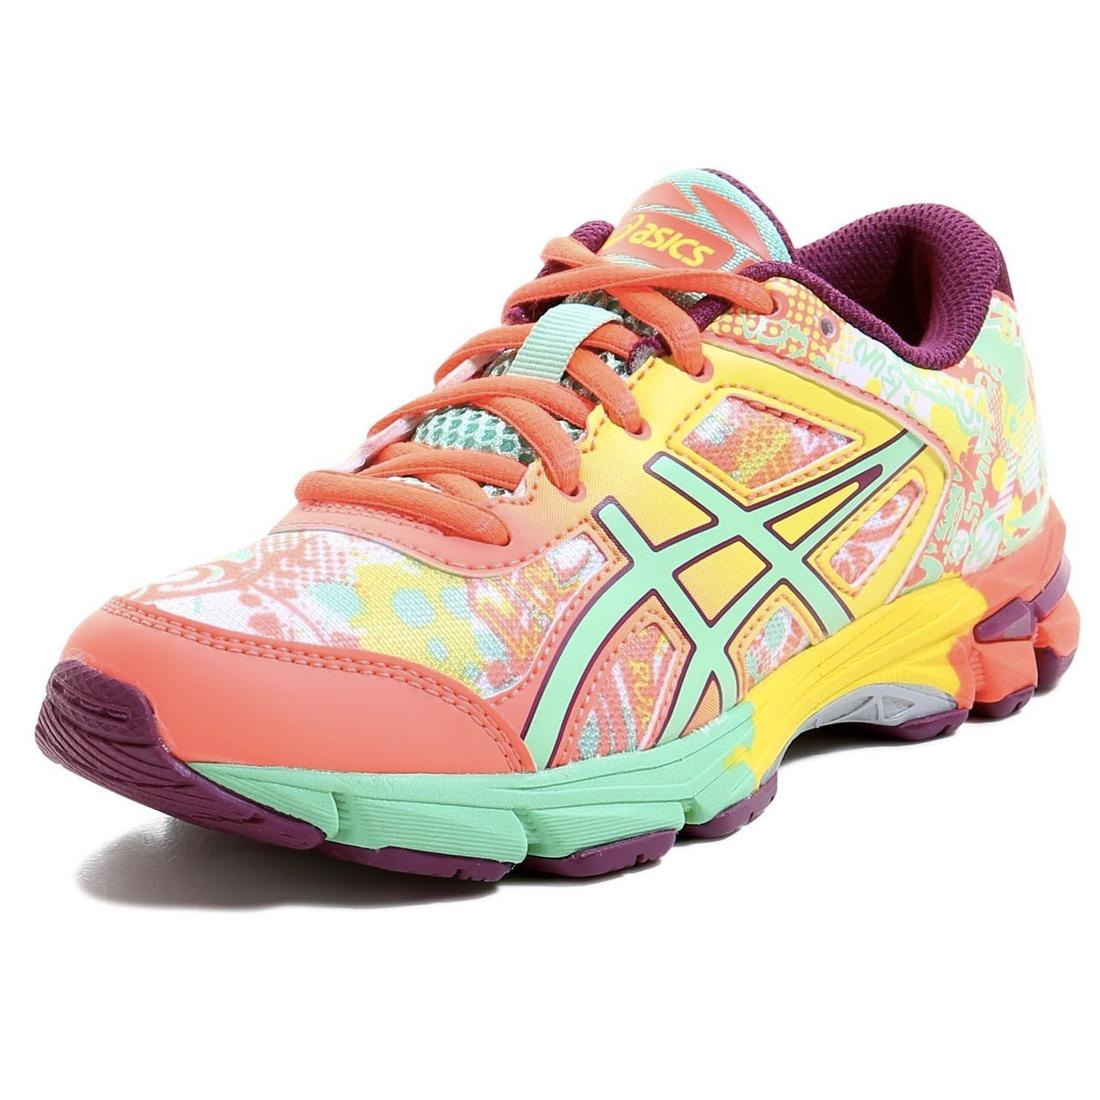 Asics Noosa Childrens Running Shoes